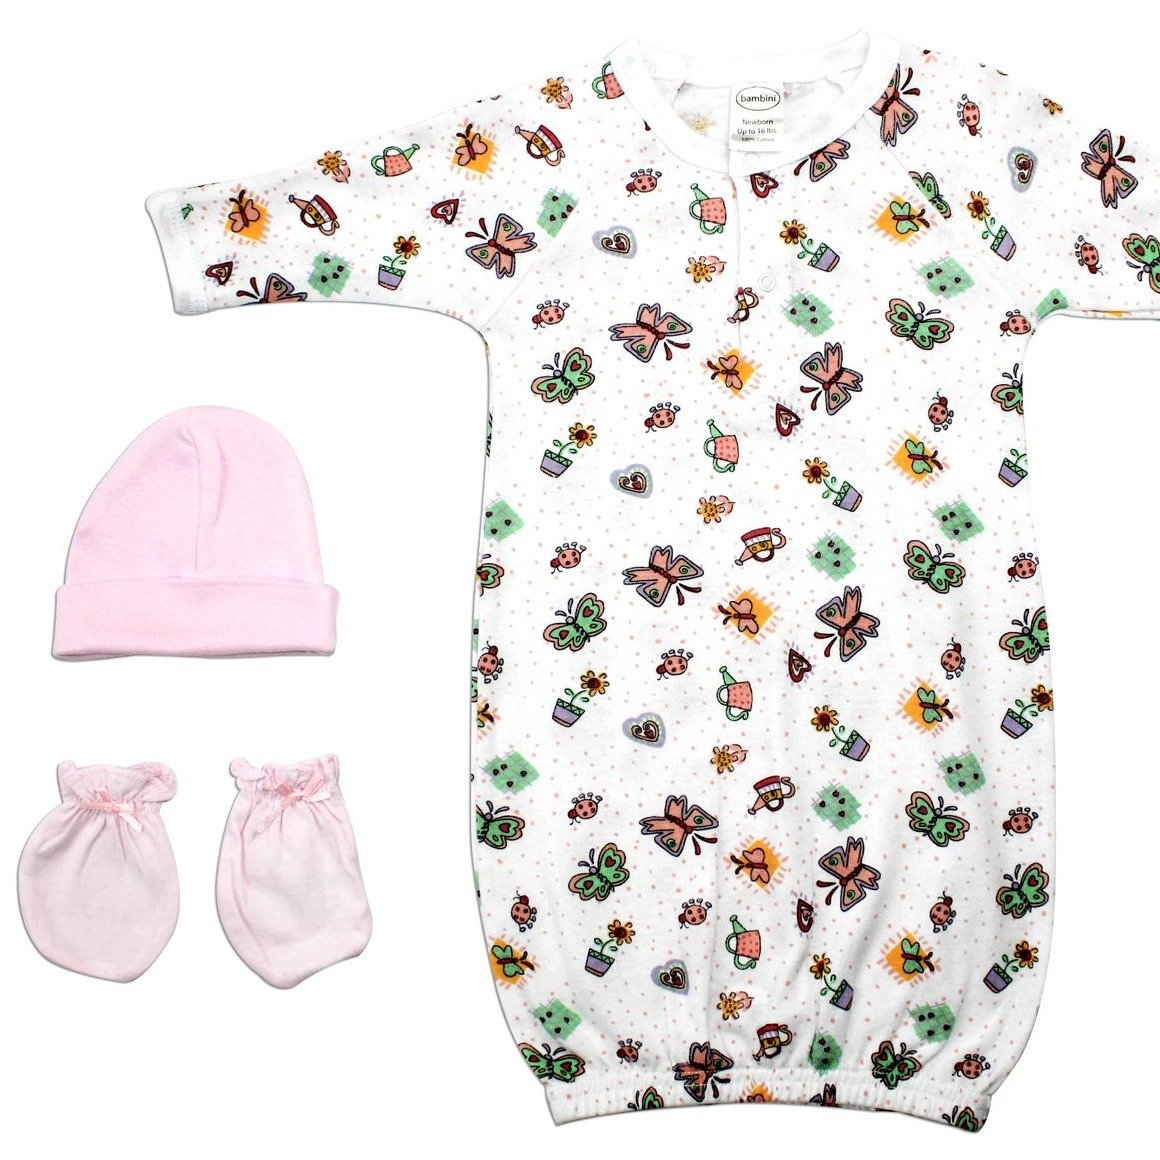 Baby Clothing - Girls 3 Piece Layette Set